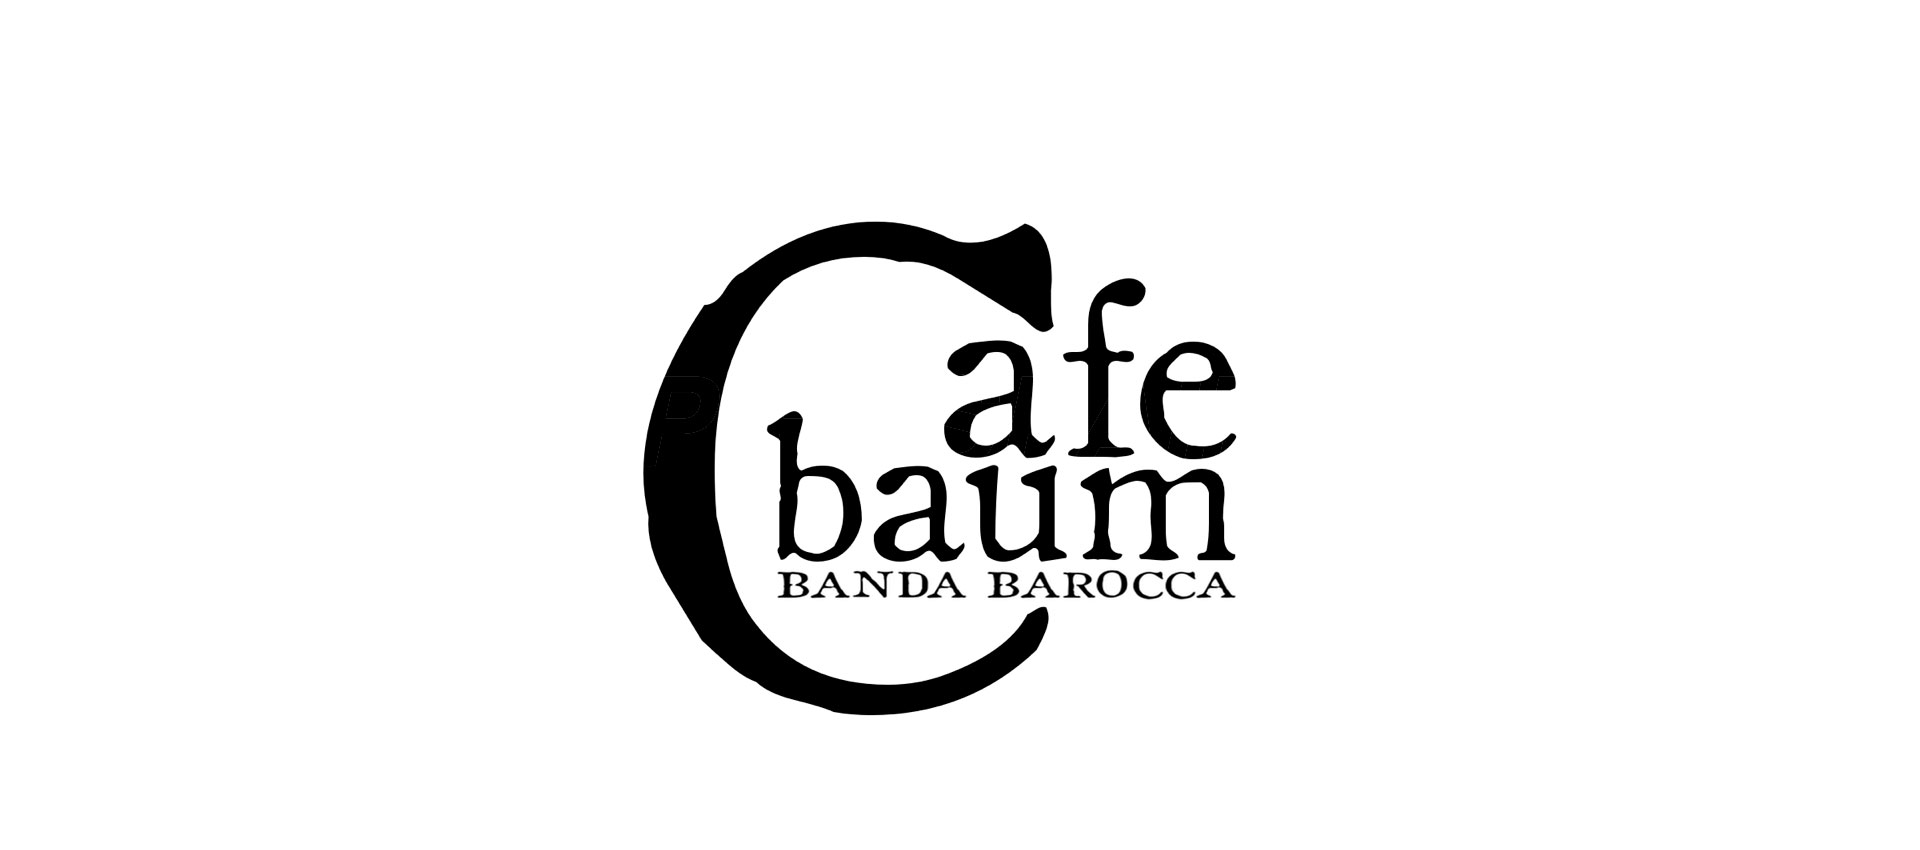 Cafebaum Trabajos Corporativos - video boda cadiz